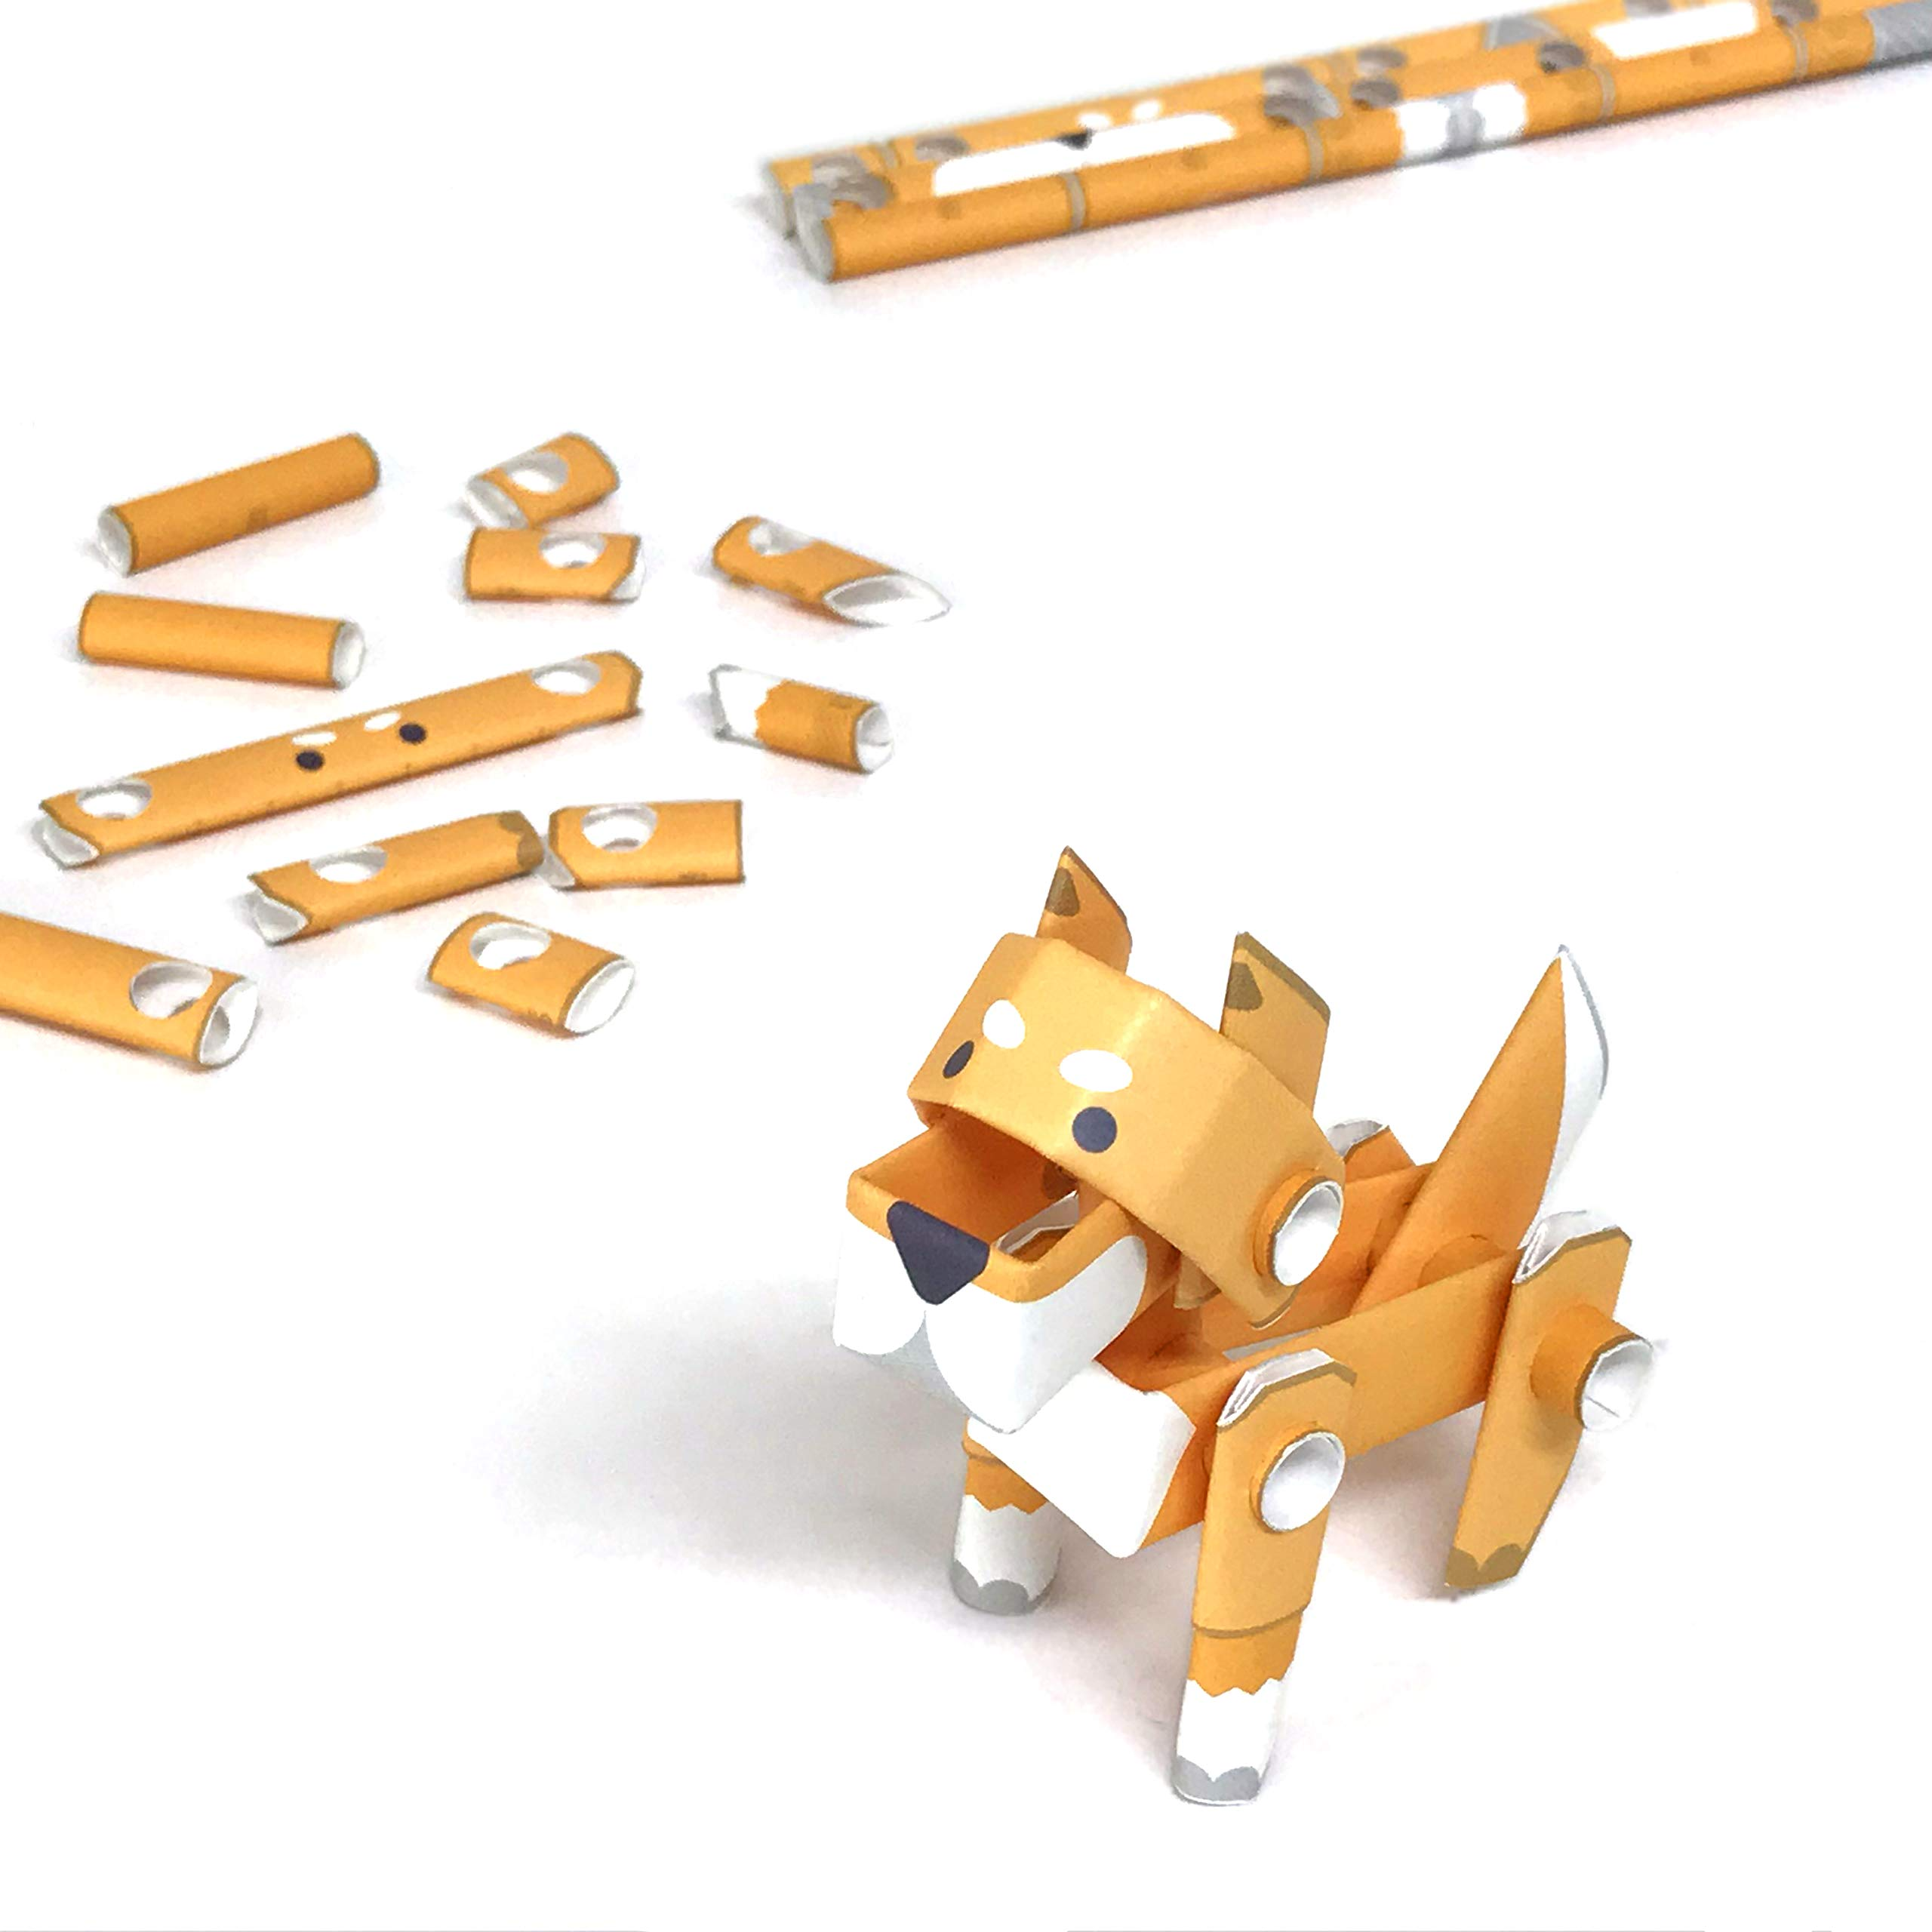 PIPEROID Animals Shiba Inu Dog Japanese DIY Paper Craft Kit - Cool Science Party Favor for Teens and Origami Loving Adults